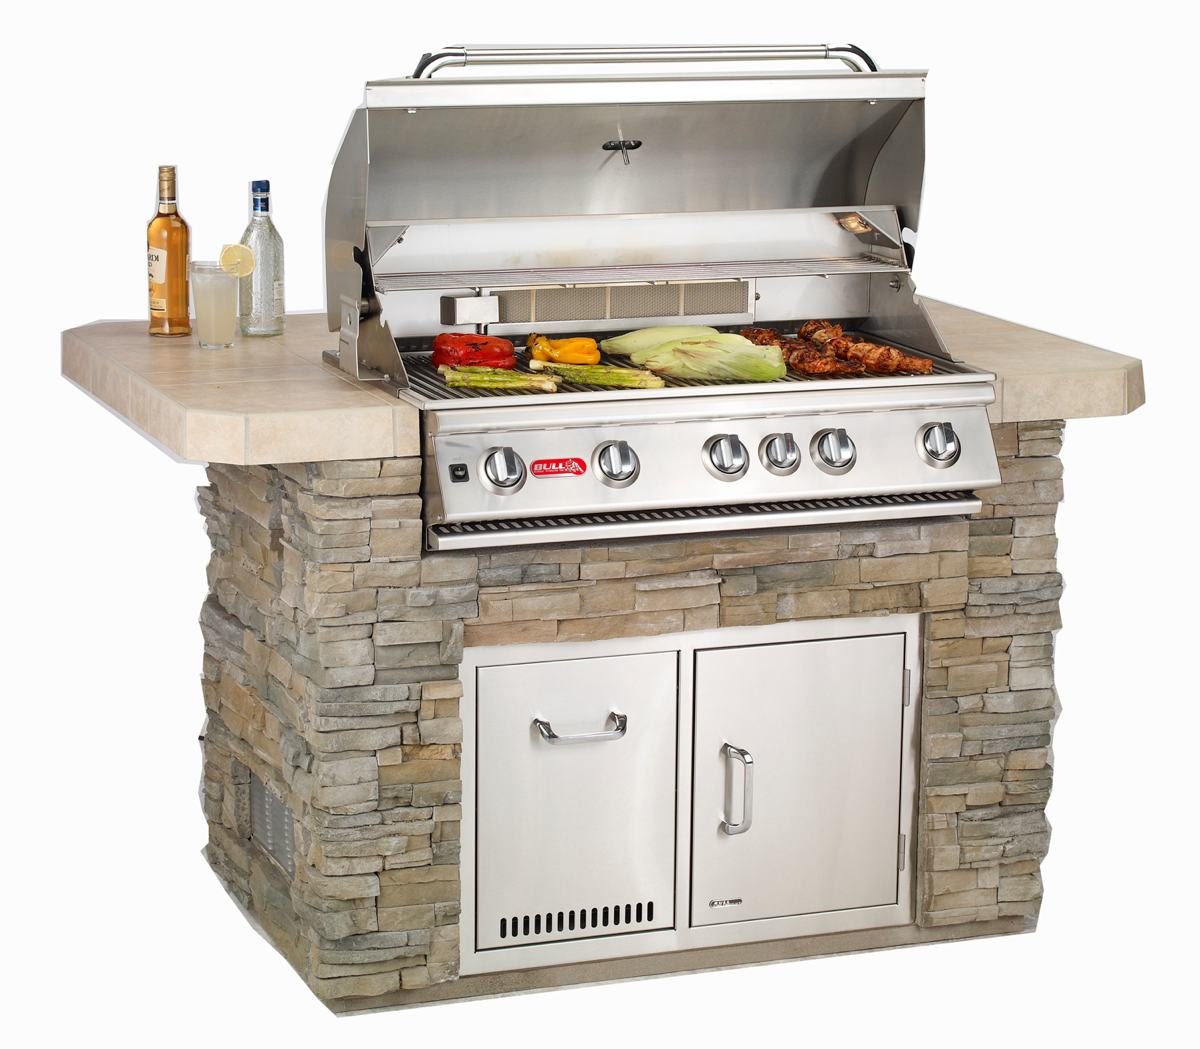 Bull outdoor products bbq 57569 brahma 90 000 btu grill for Outdoor kitchen equipment